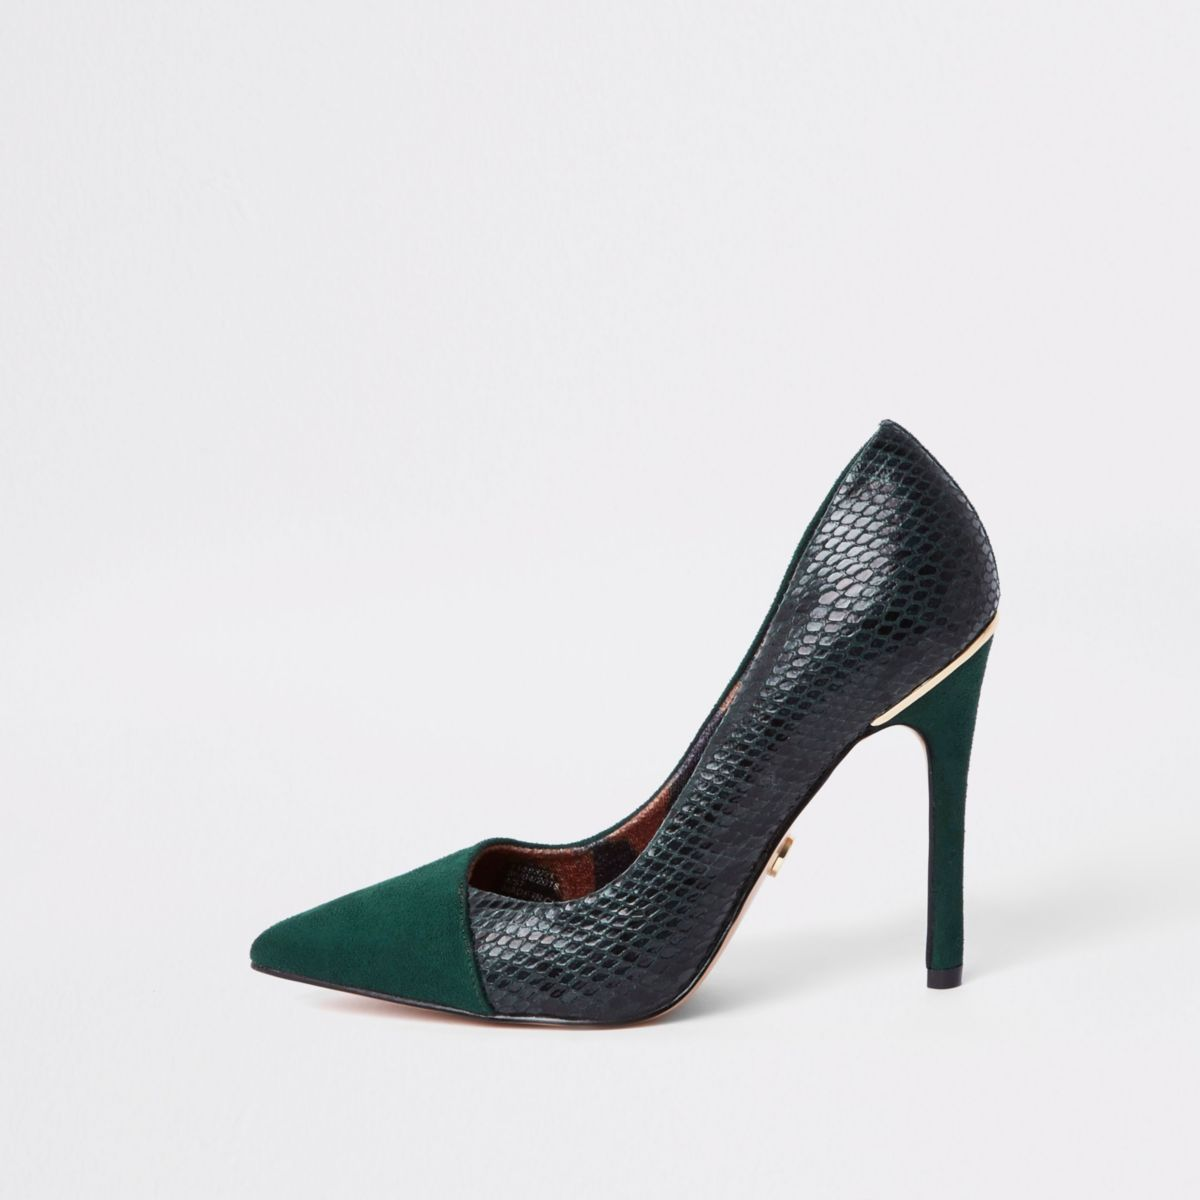 River Island Green Court Shoes